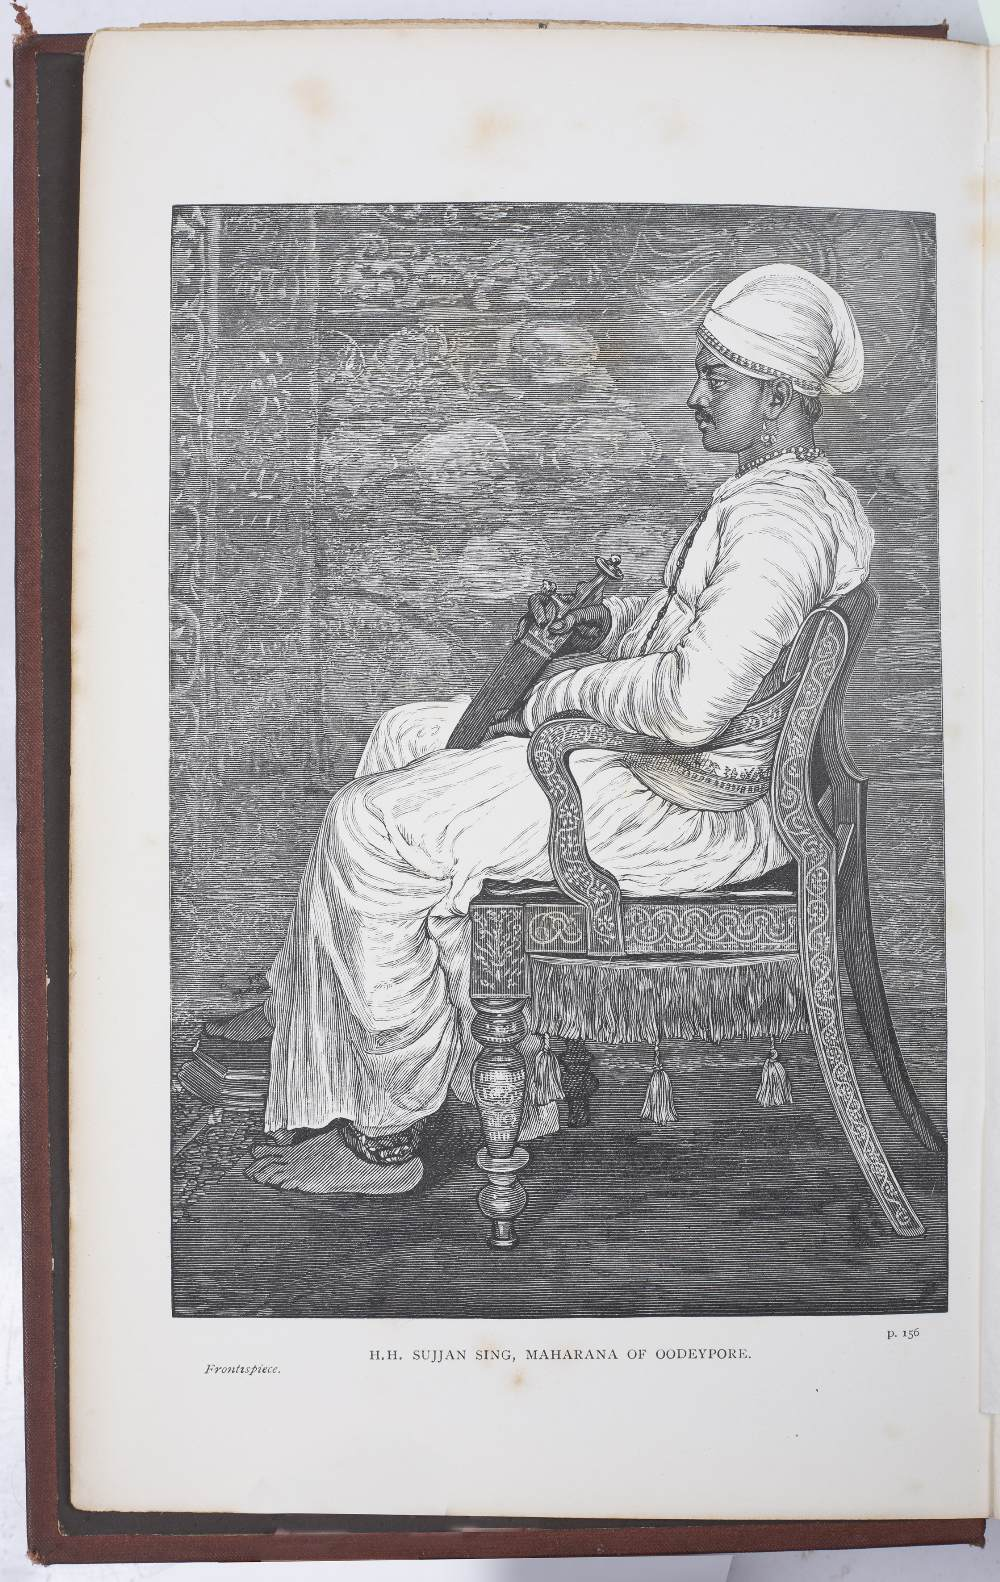 PRINSEP, Valentine Cameron, Artist and Writer (1838-1904) 'Imperial India'. 2nd Ed. revised. Chapman